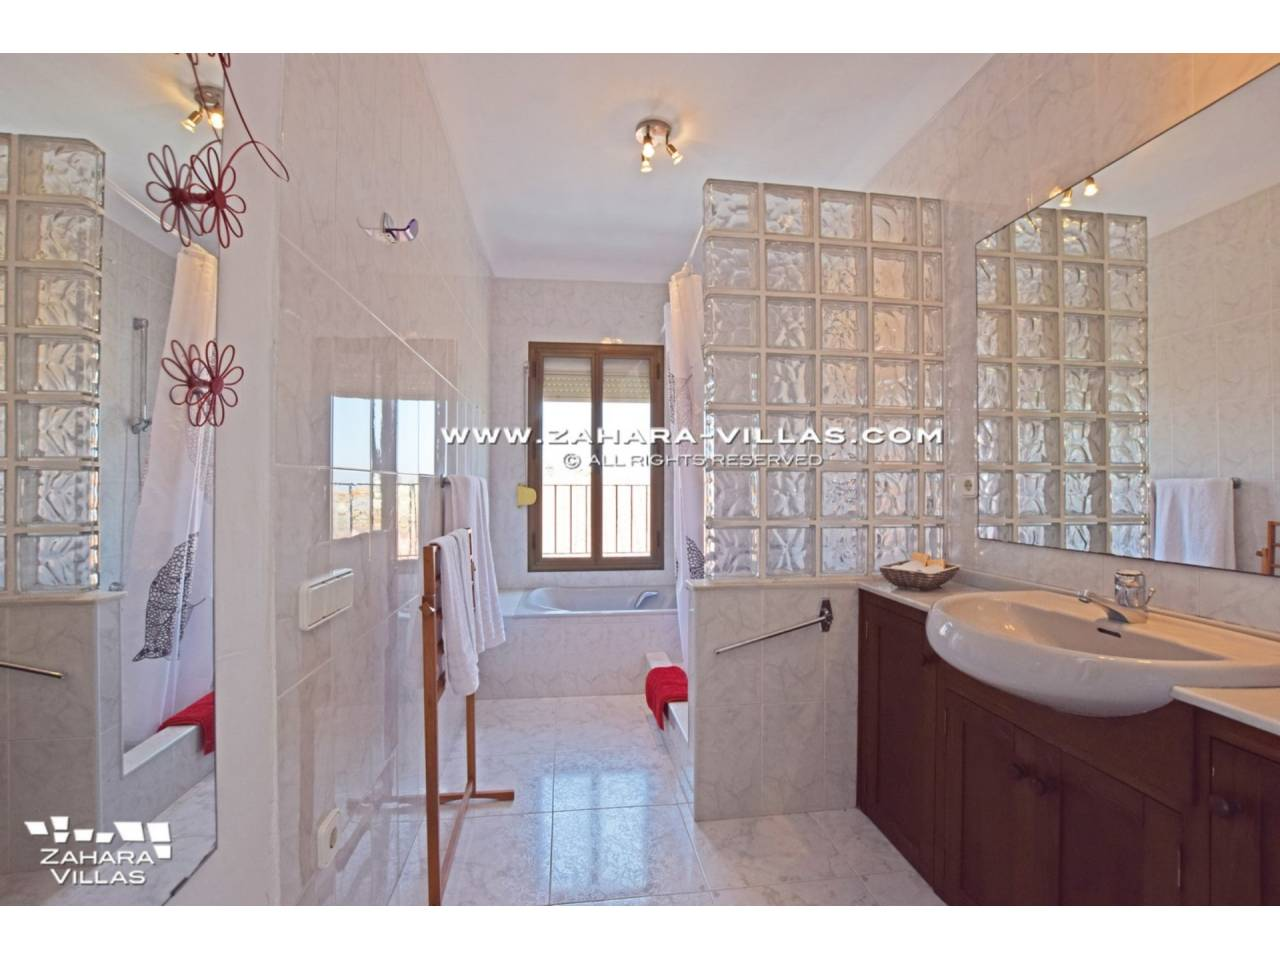 Imagen 10 de Wonderful Villa for sale in Atlanterra-Zahara de los Atunes